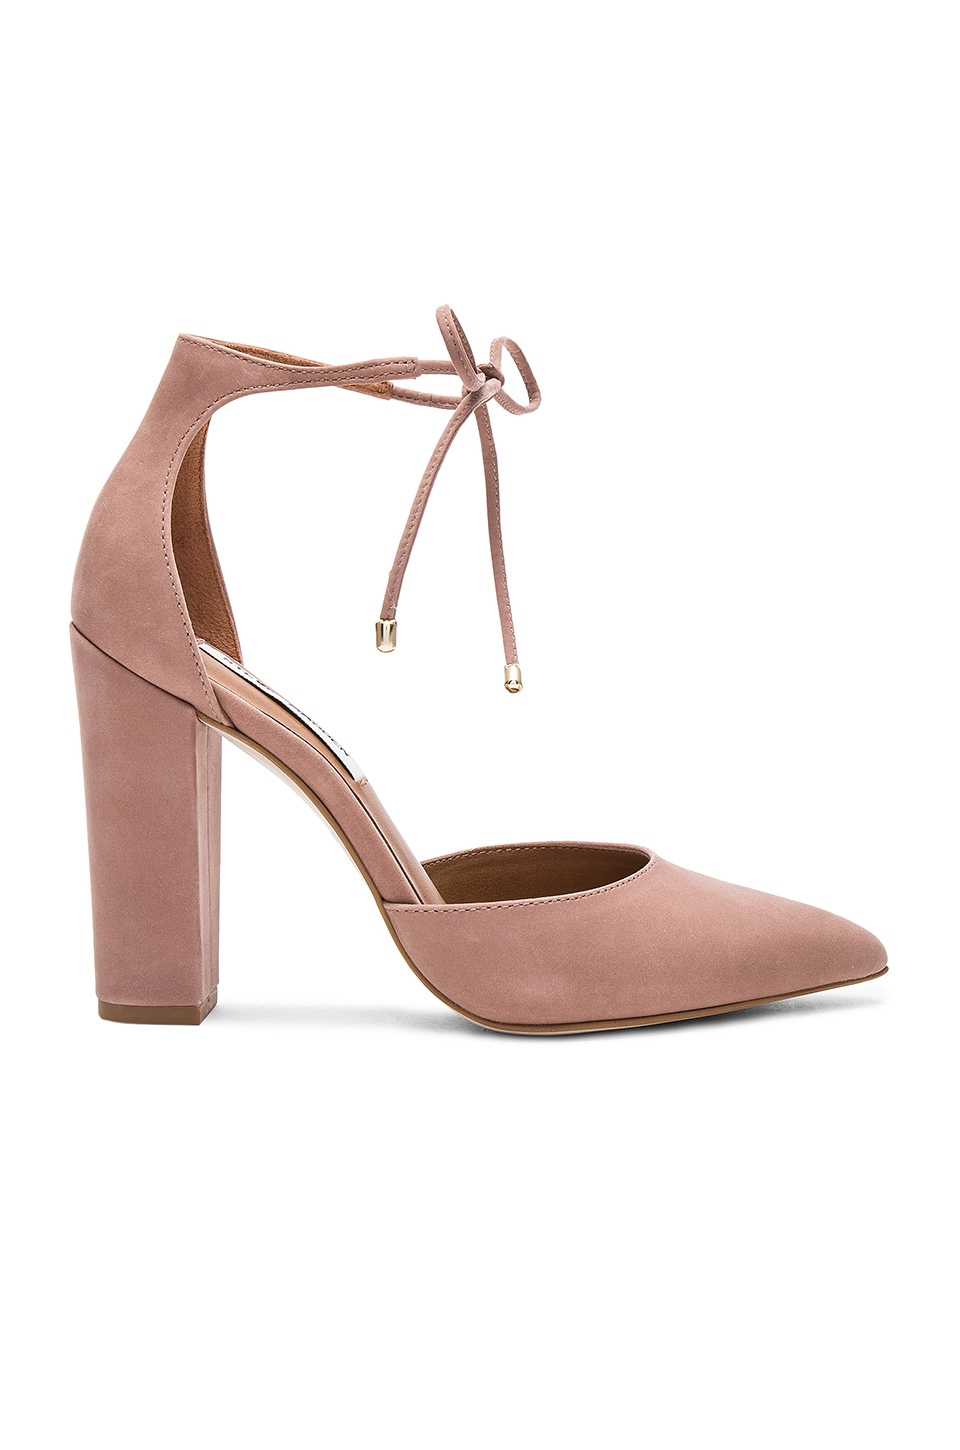 Steve Madden Pampered Heel in Blush Nubuck